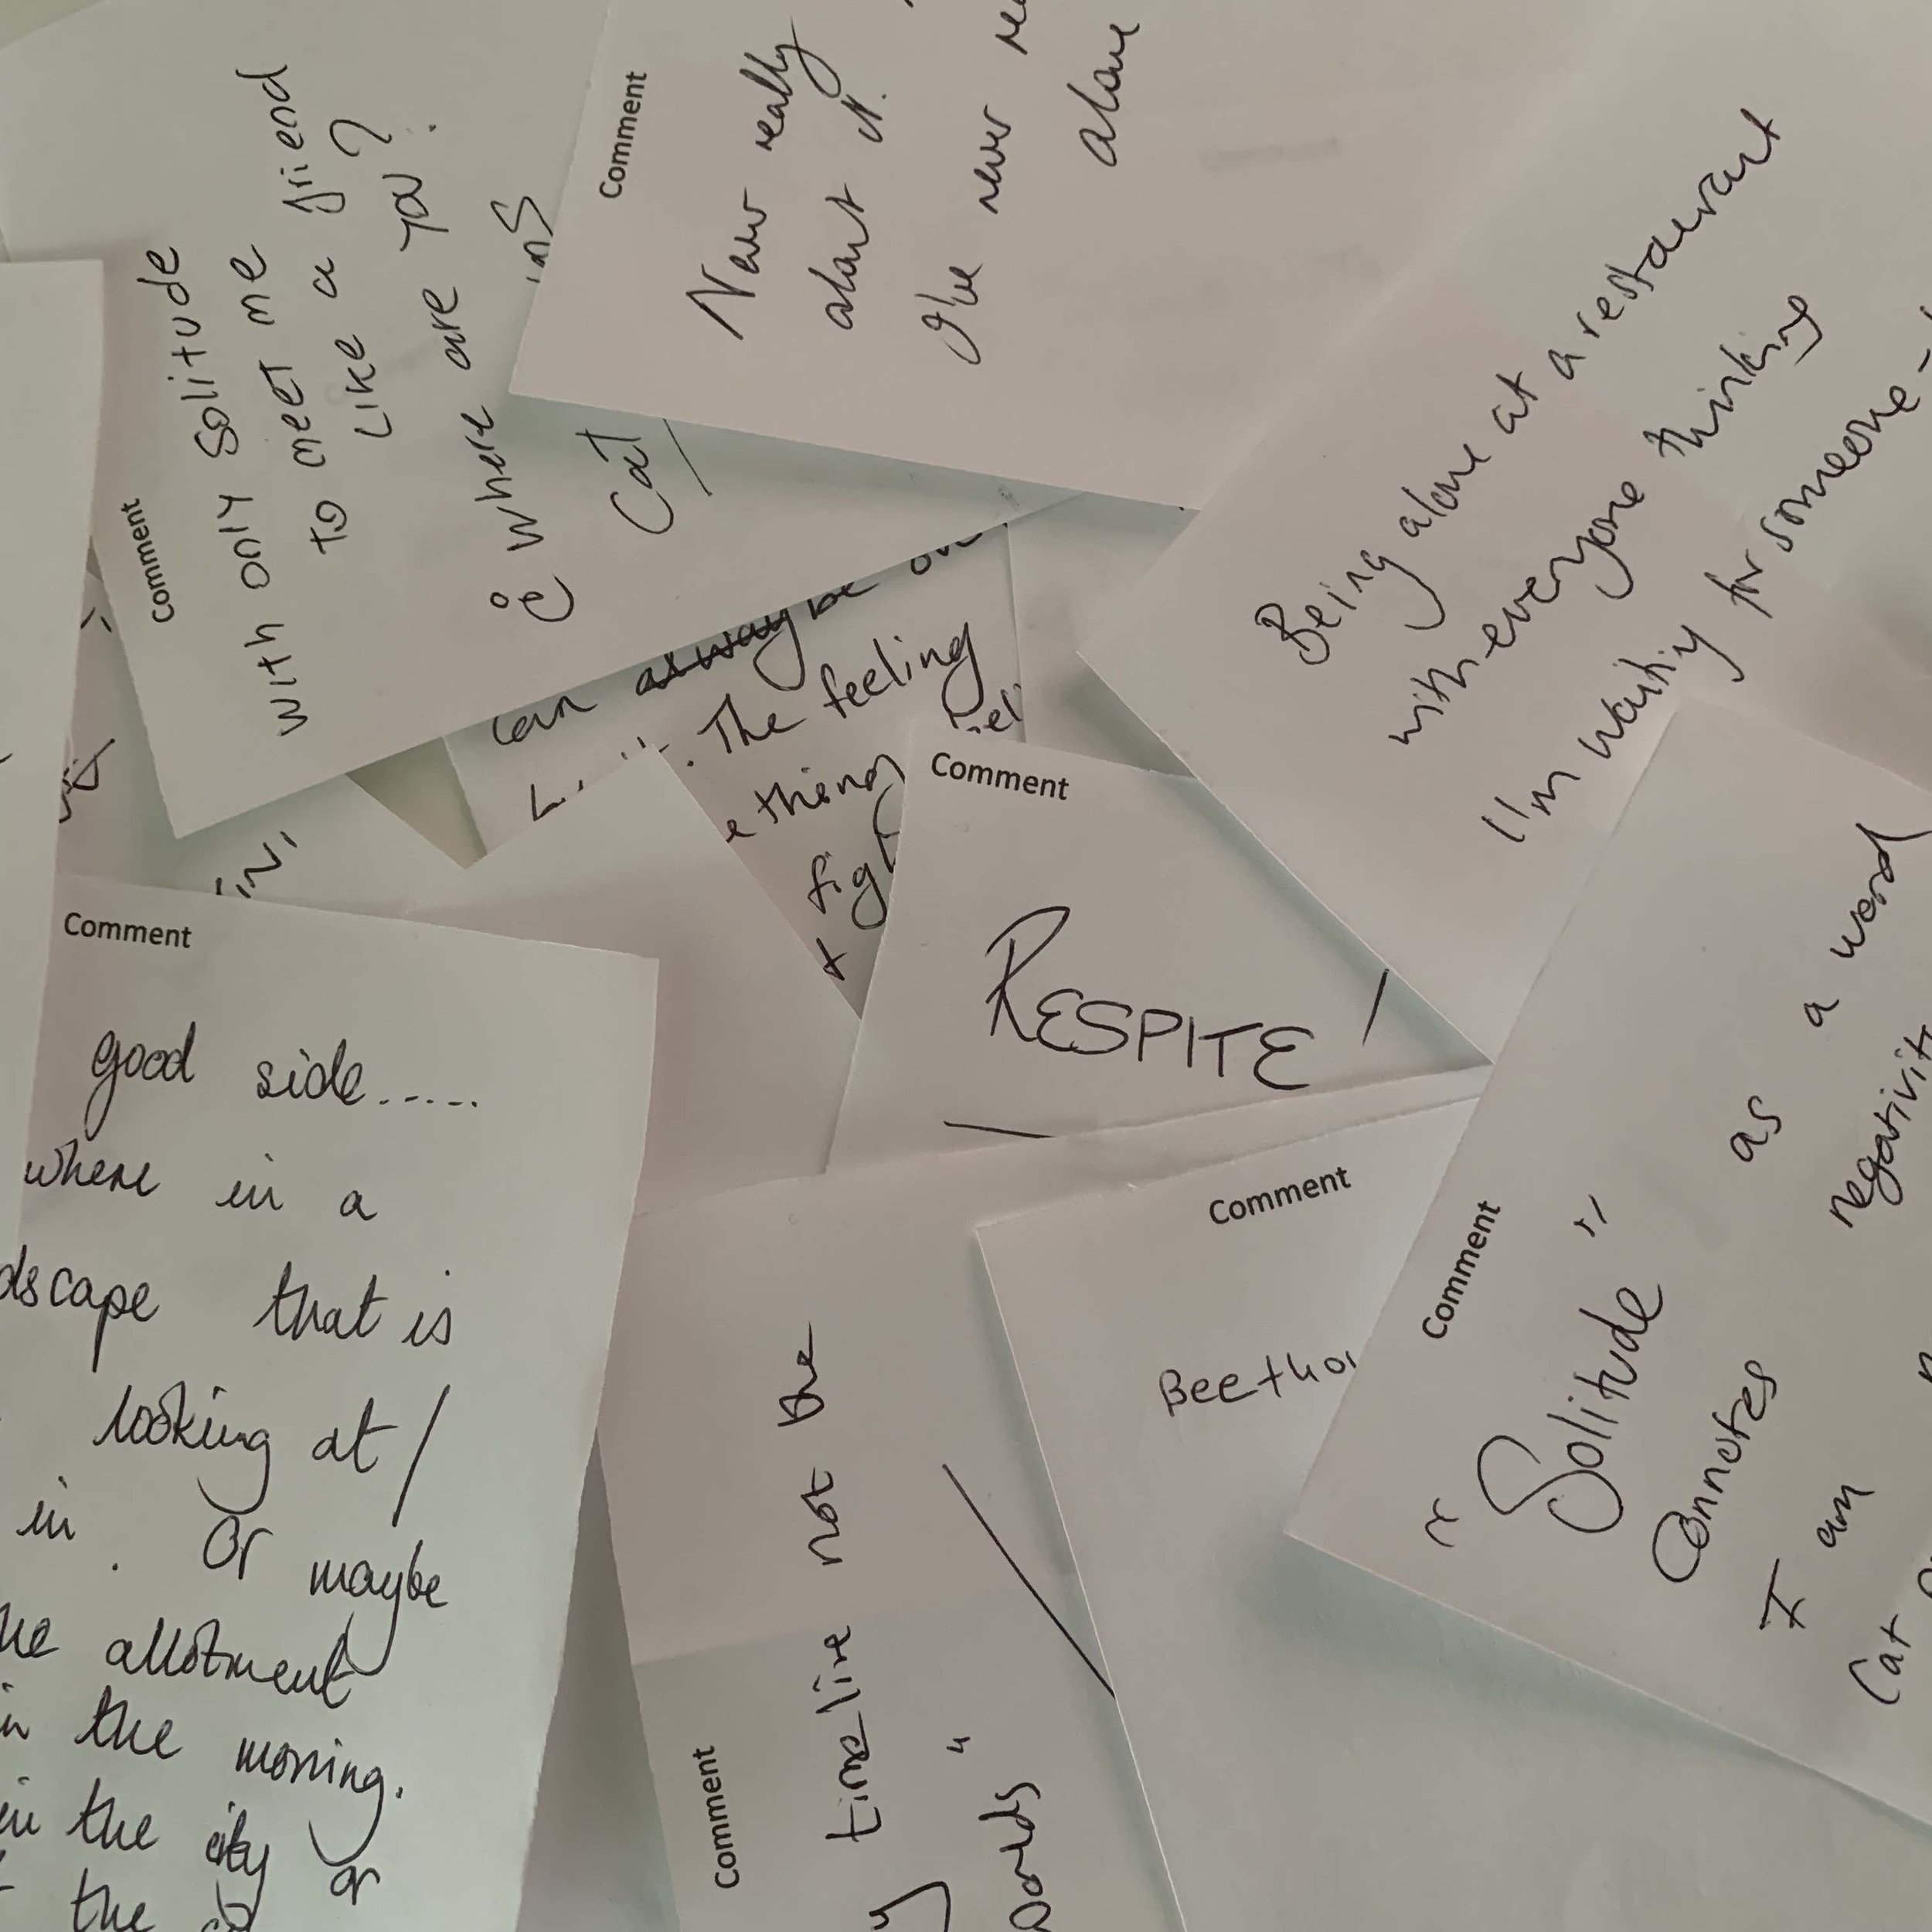 Comment cards collected during the exhibition